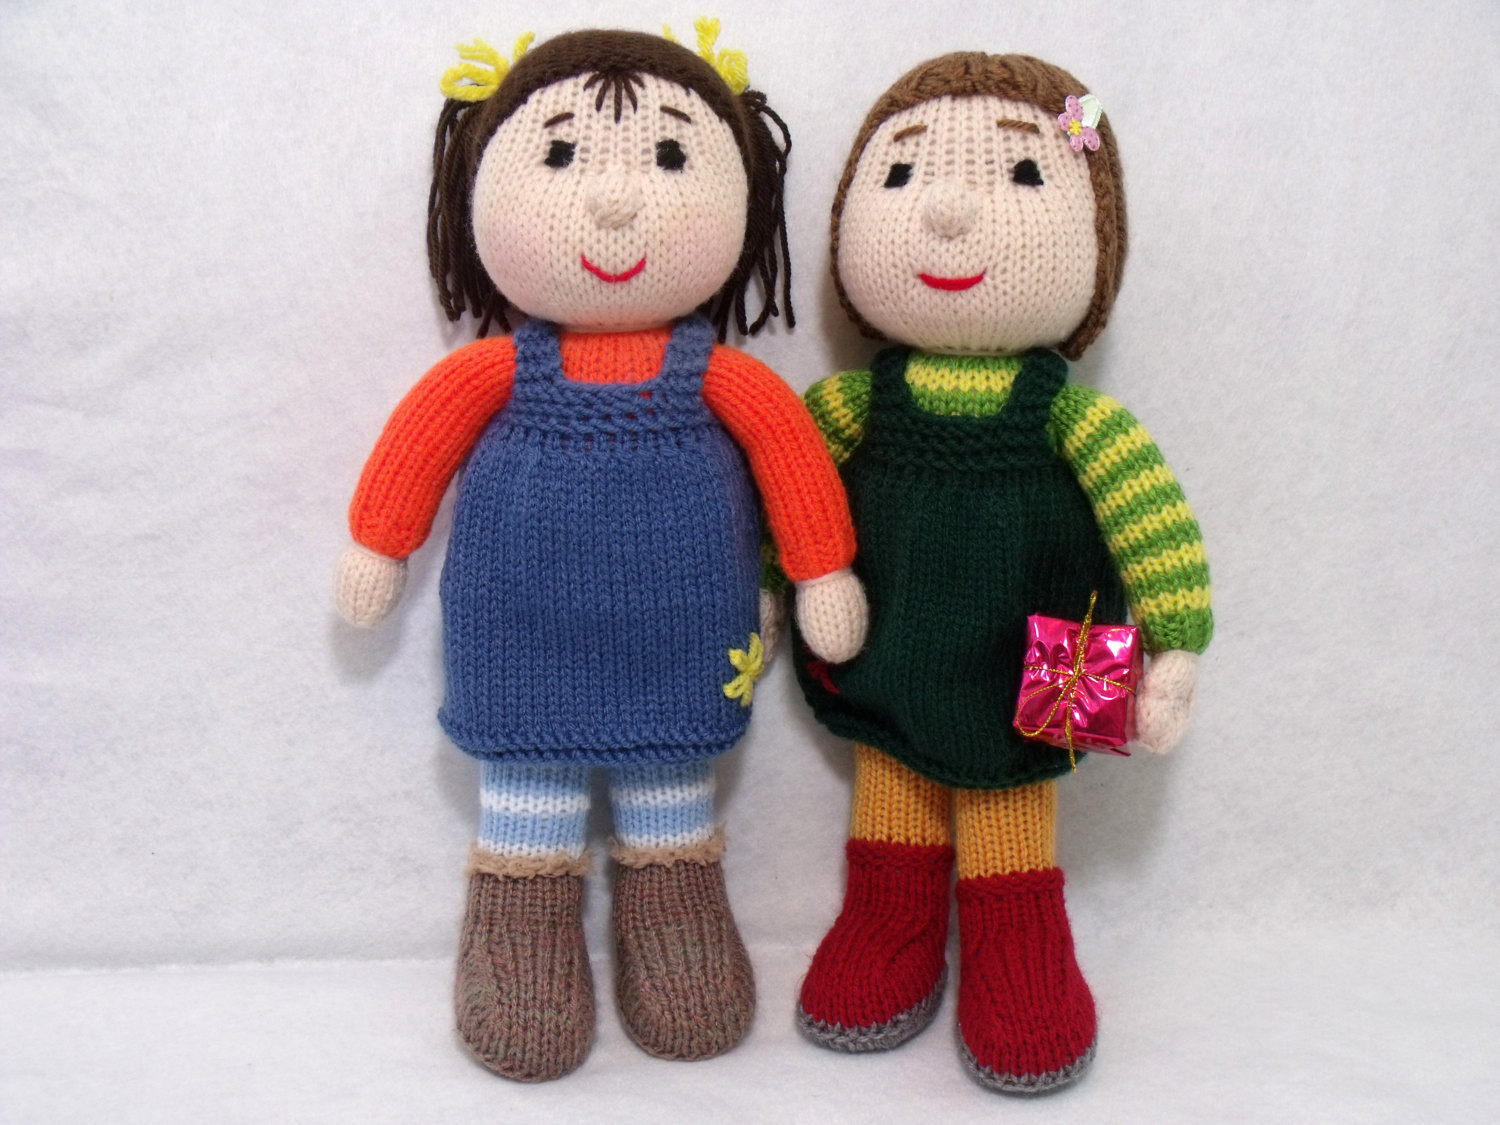 Elegant Two Dolls Knitting Patterns Deal toy Knitting Pattern Pdf Knitted Doll Patterns Of Lovely 40 Models Knitted Doll Patterns